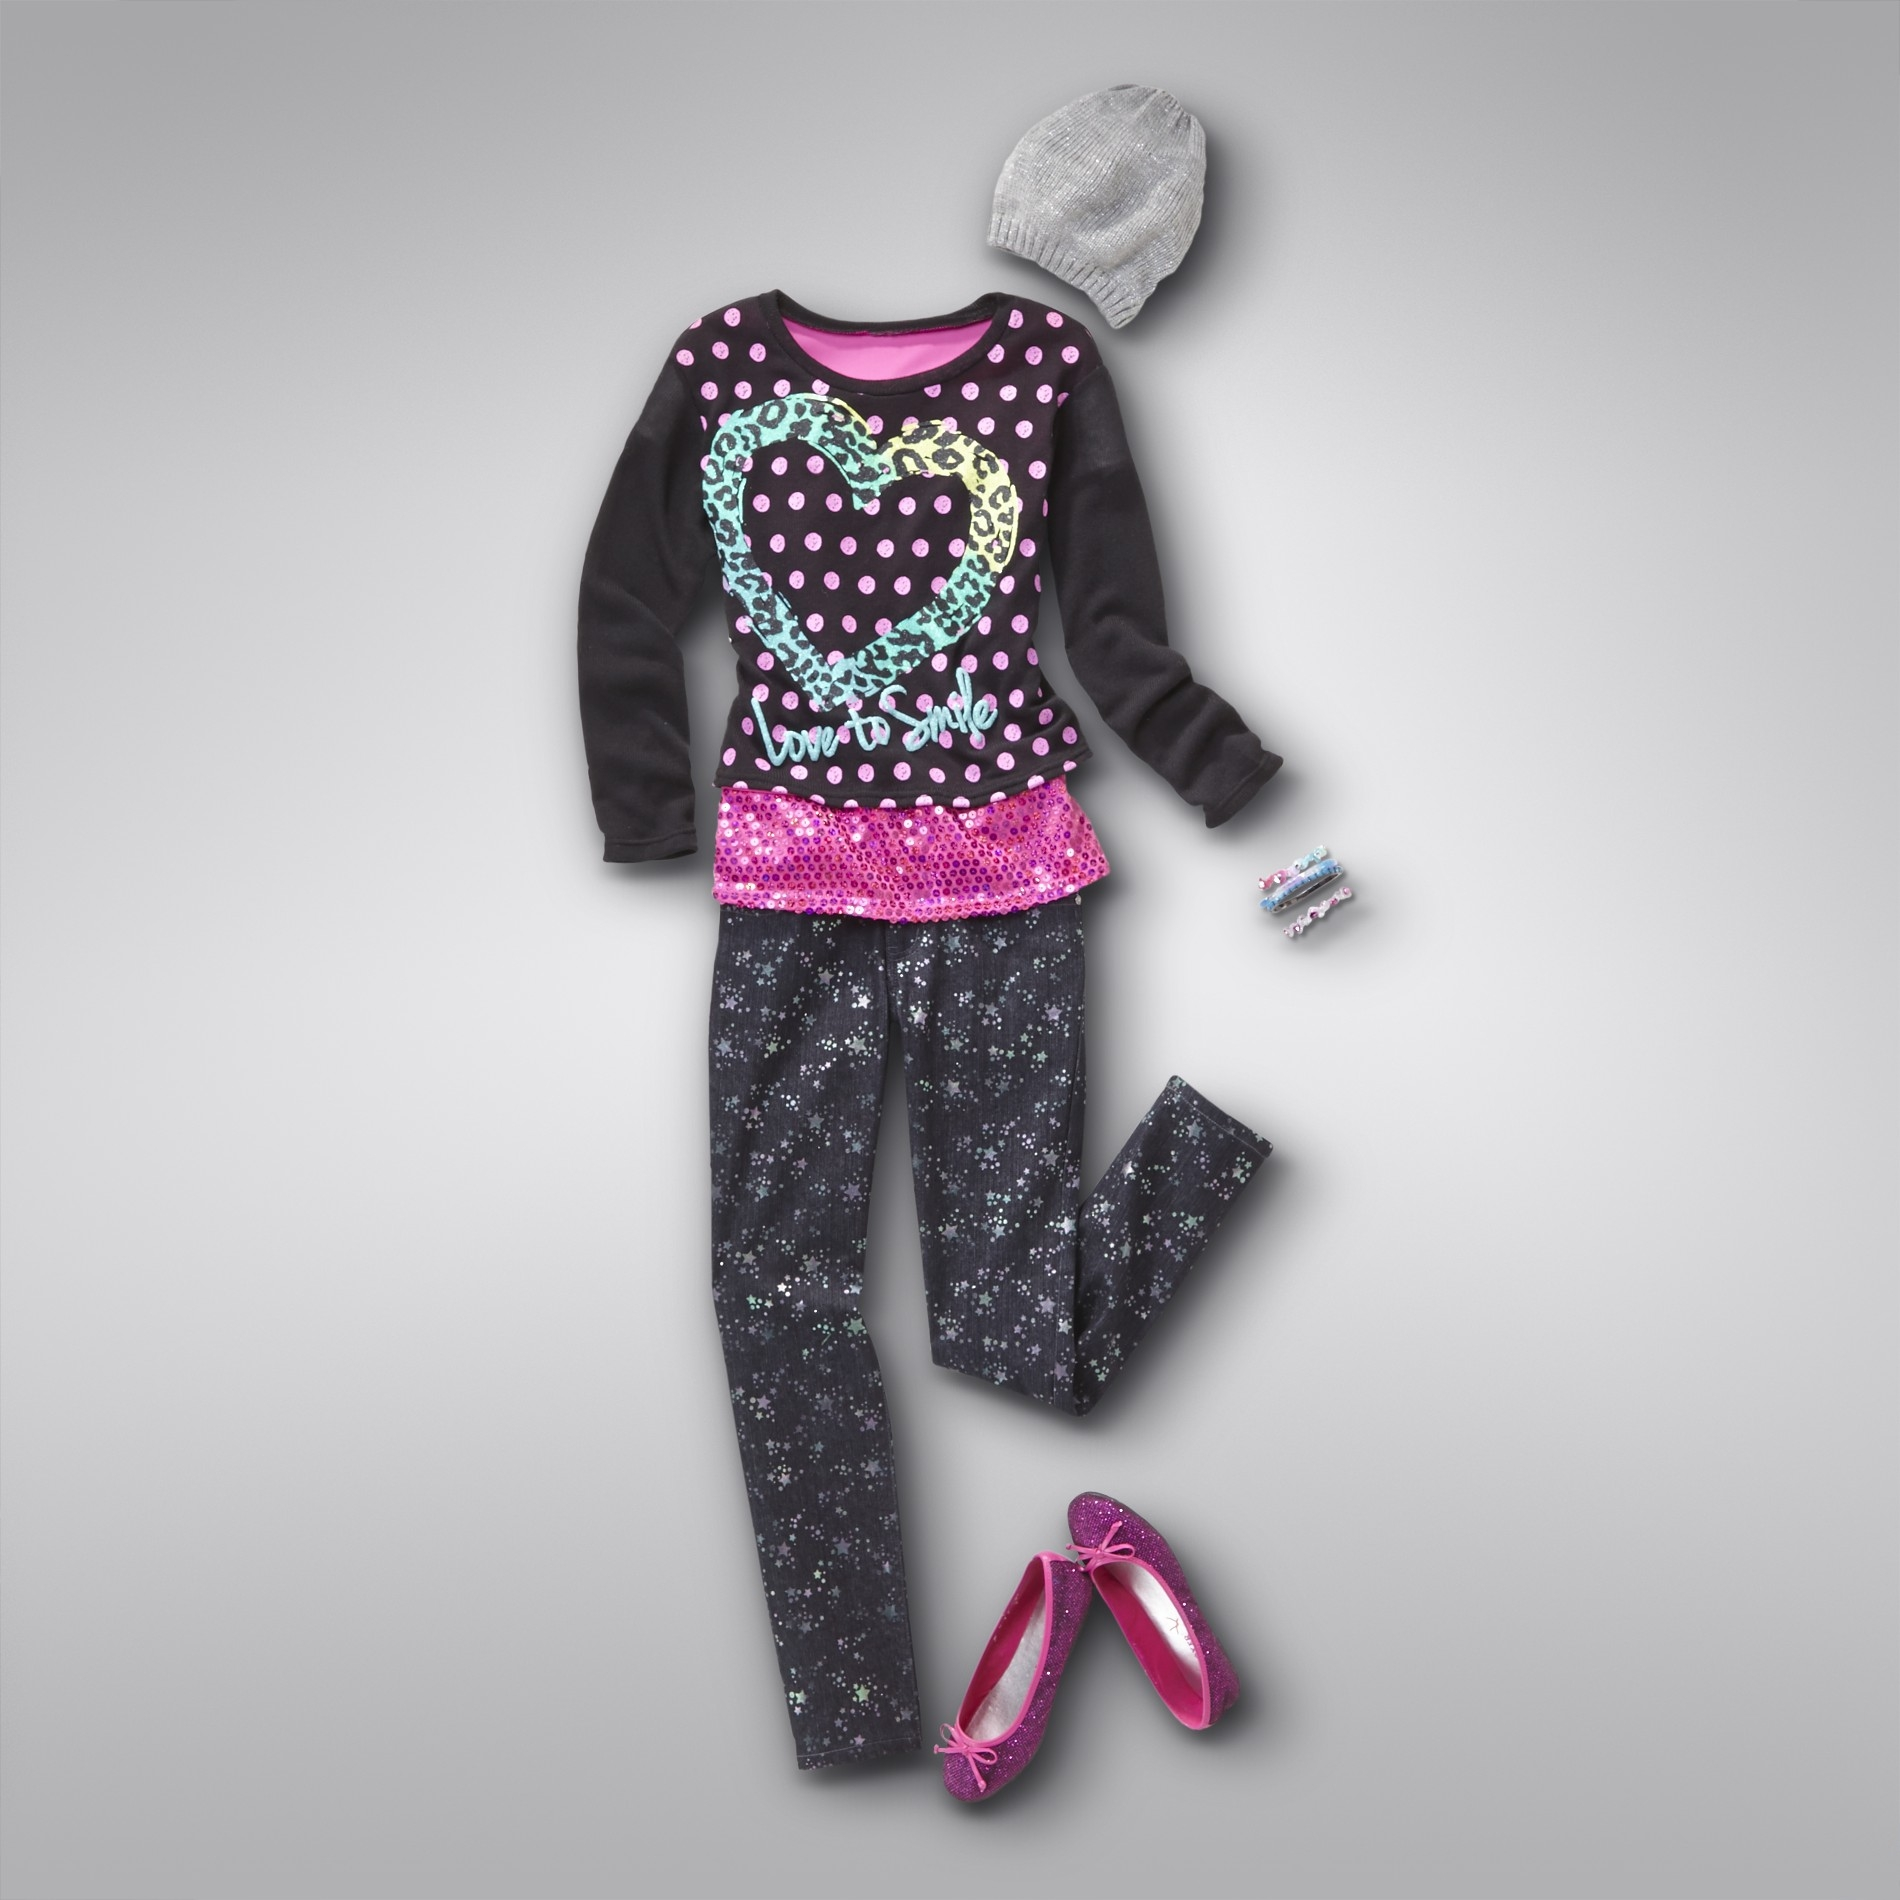 Girl's Love To Smile Outfit at Kmart.com